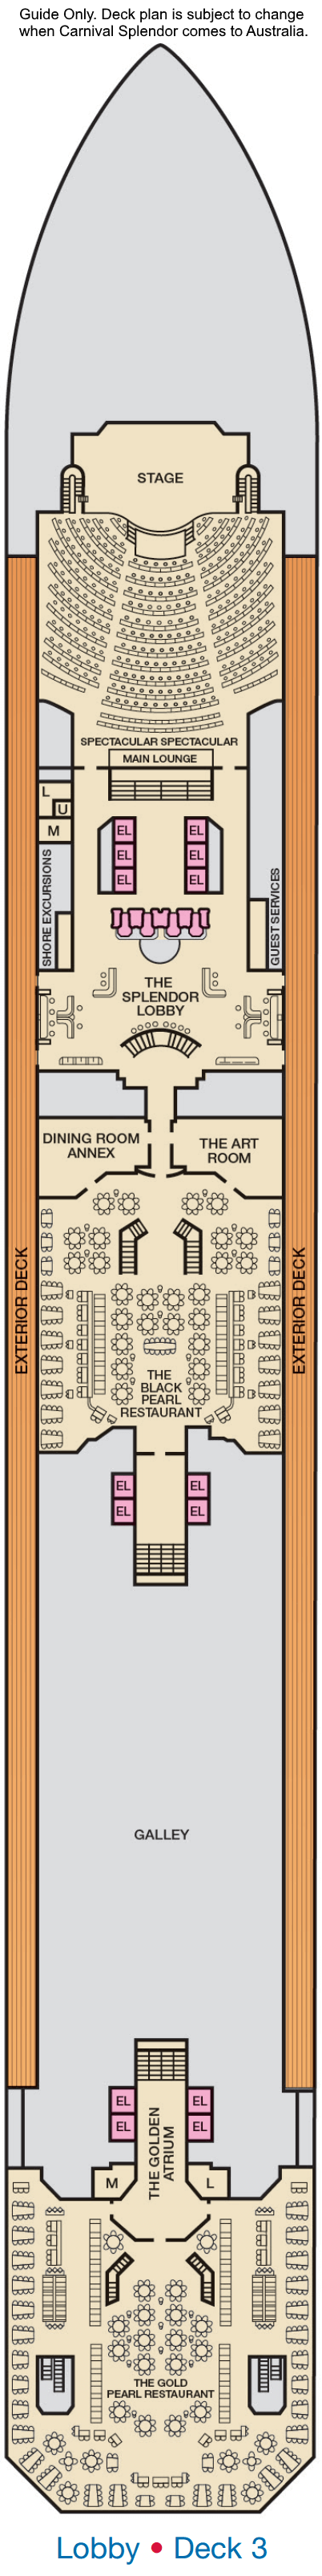 Carnival Splendor Deck 3 layout